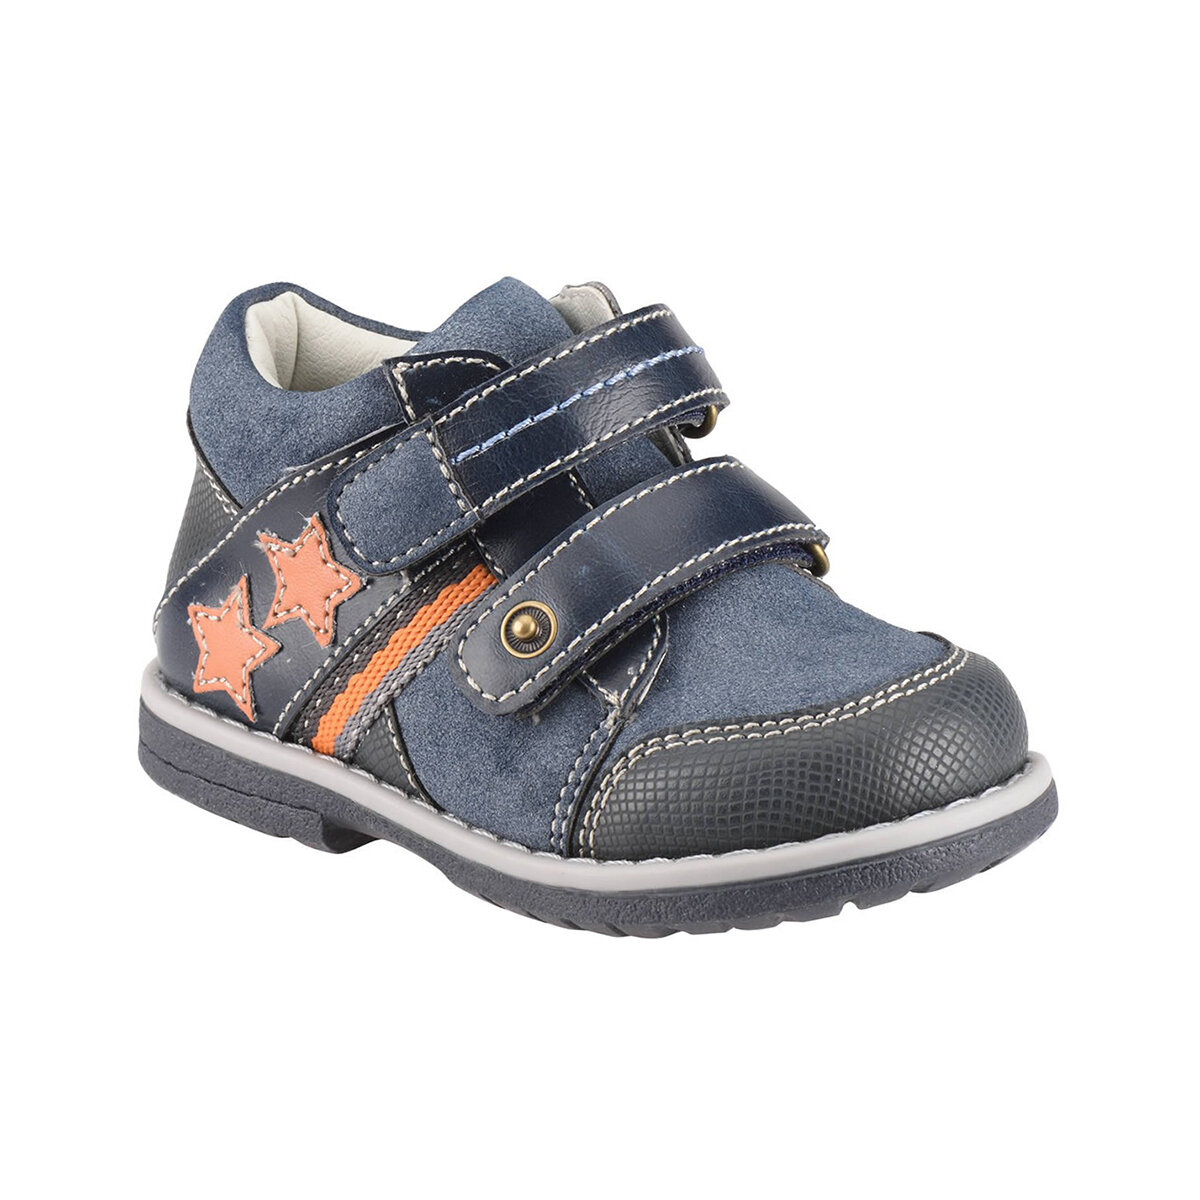 FLO 52.507571.B Navy Blue Male Child Boots Polaris